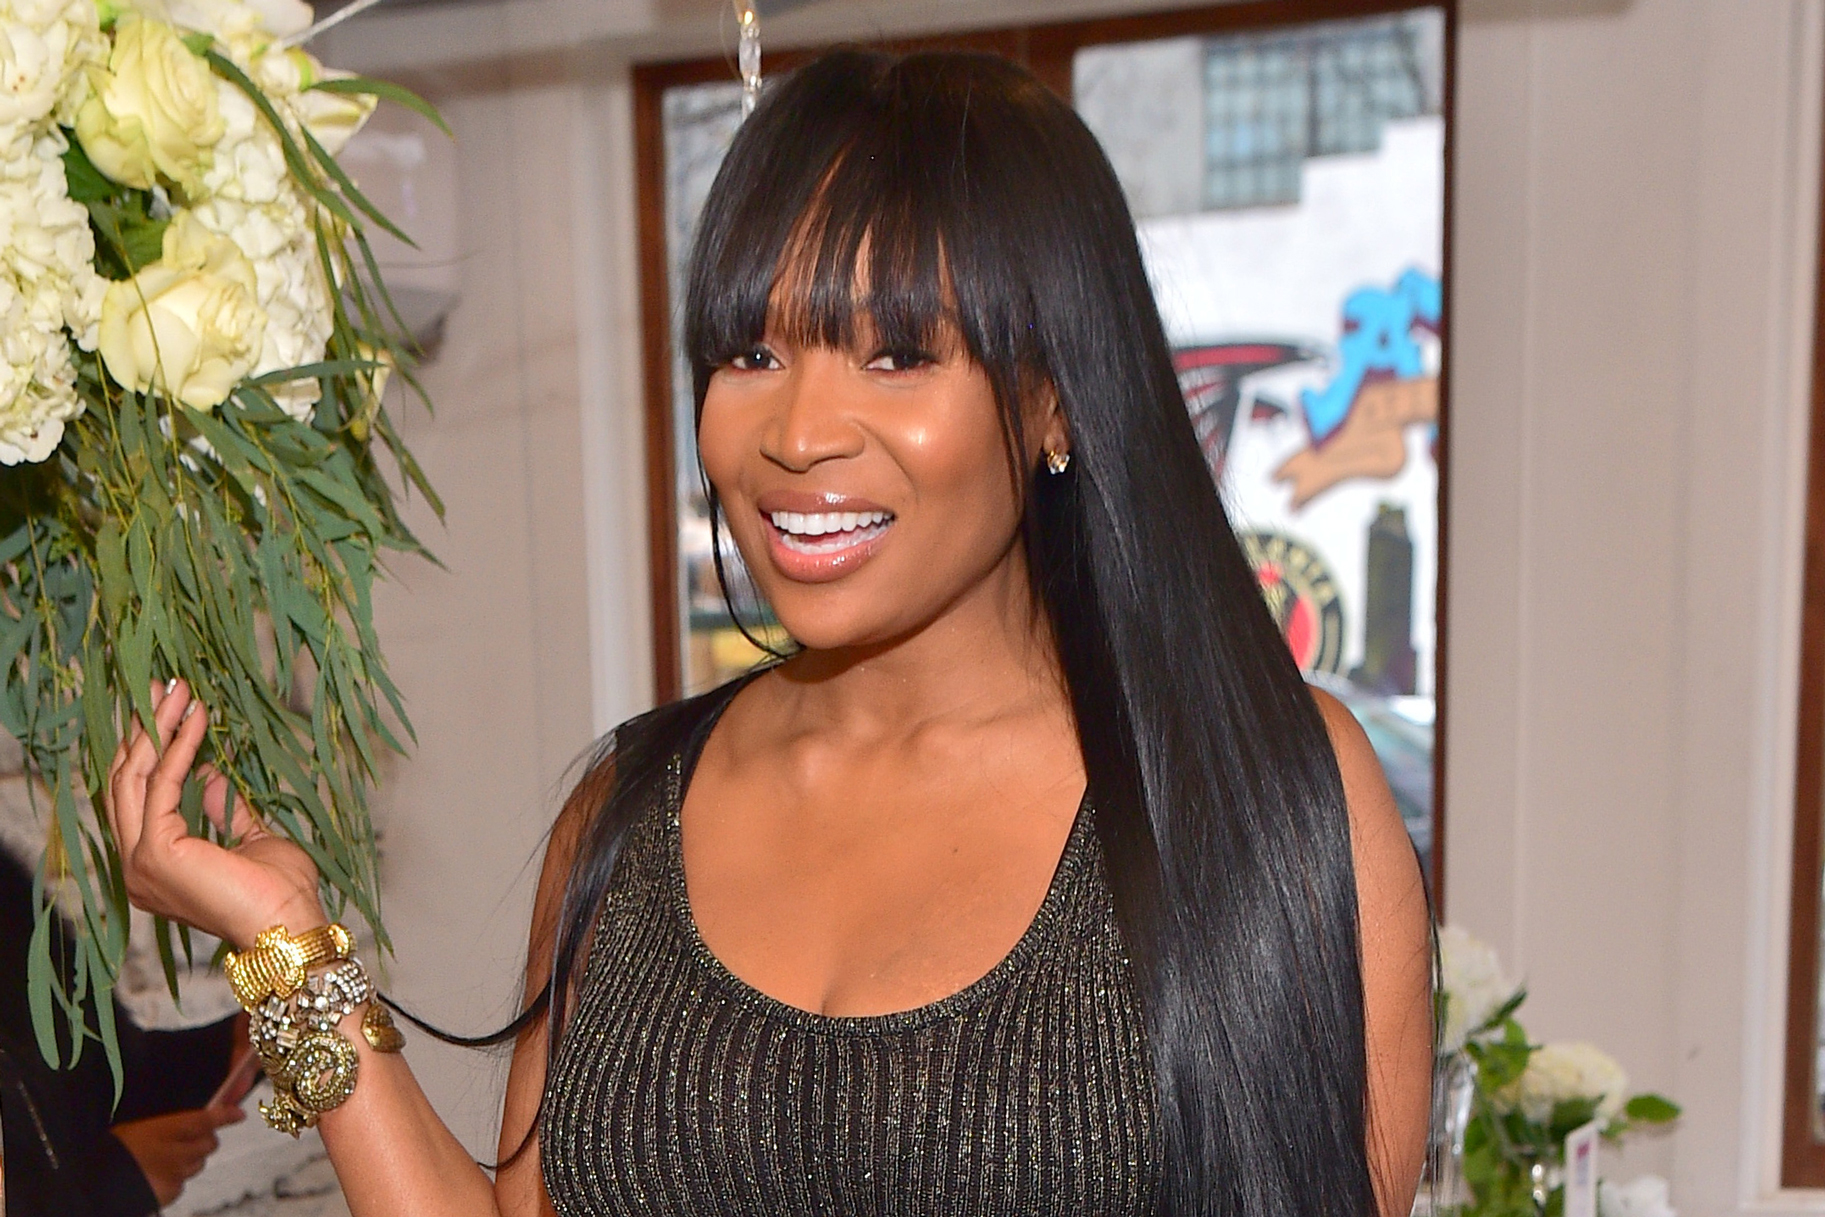 Marlo Hampton Addresses Rumors She Was A Prostitute And More - NeNe Leakes Supports Her